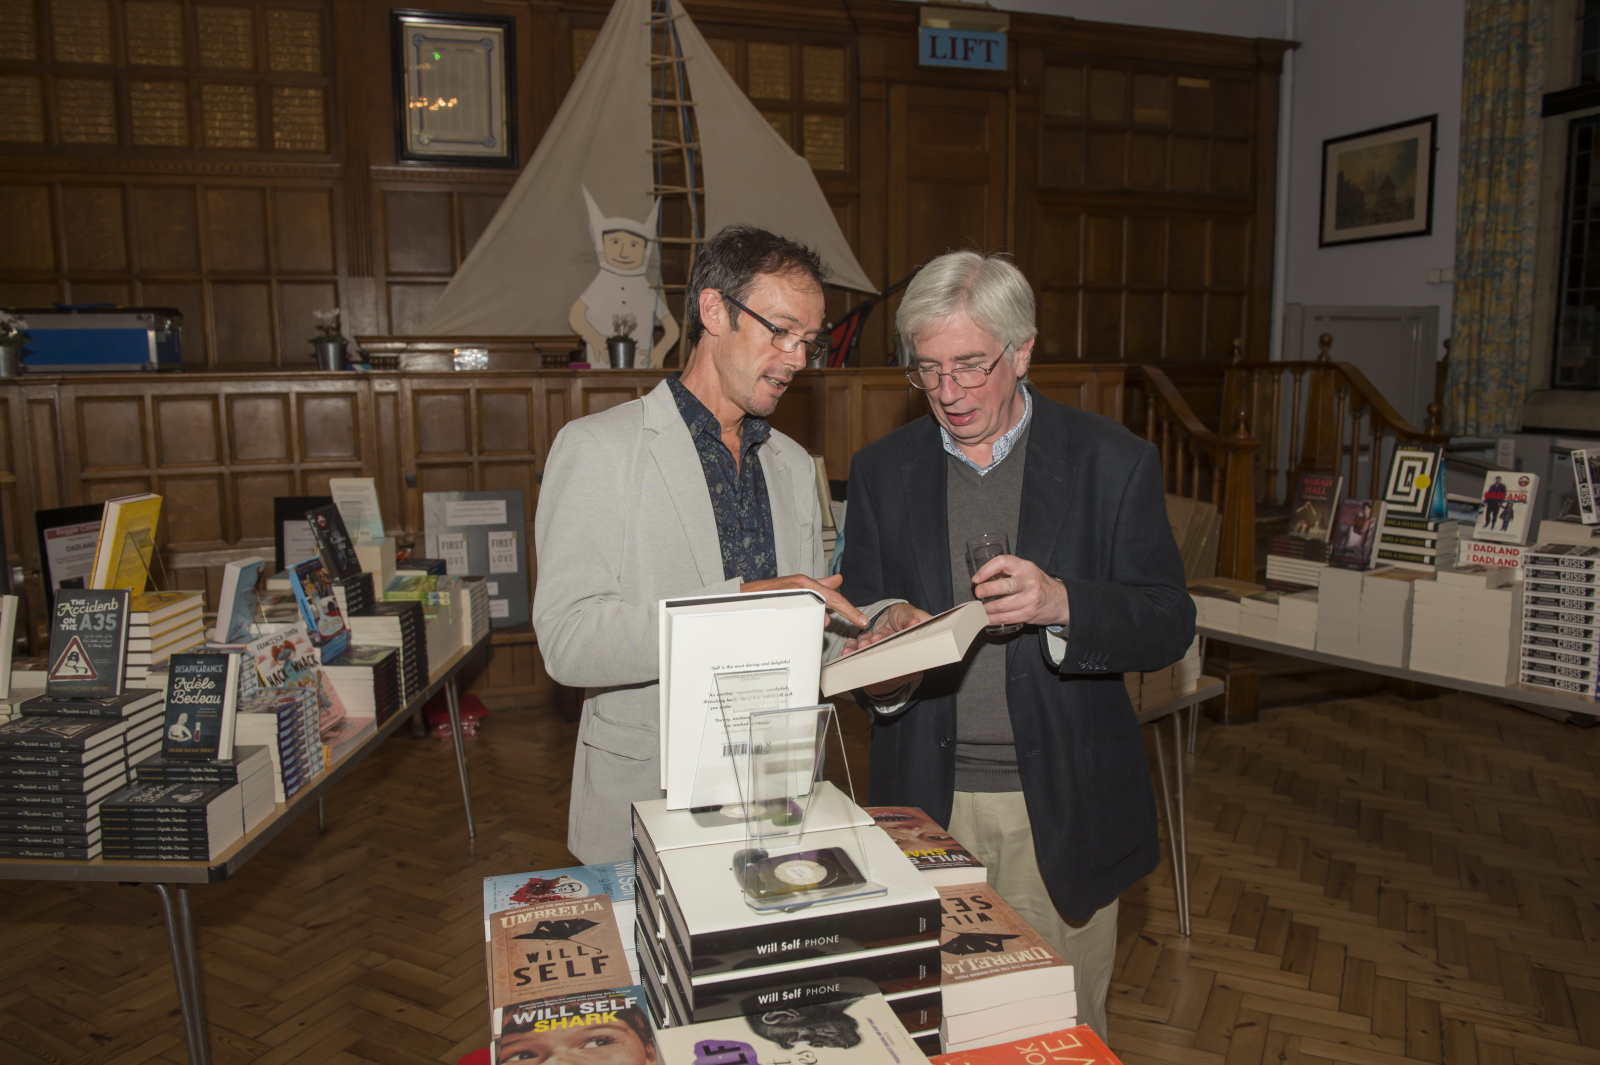 Angus MacLennan of The White Horse Bookshop with Chris Gange of Katharine House Gallery